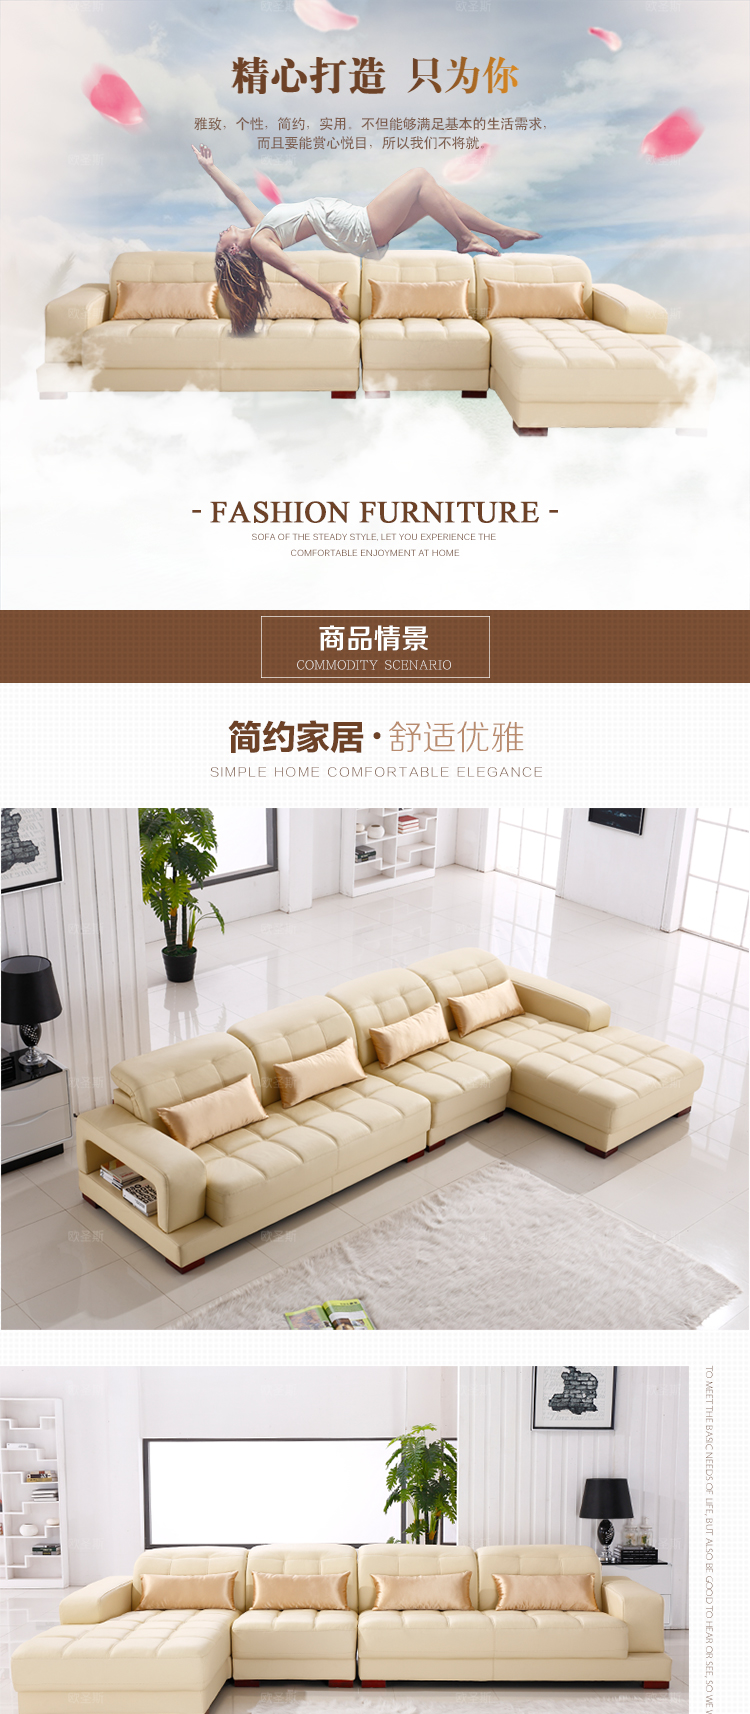 Surprising 2019 Softline Leather Sofa Italian Nubuck Leather Sofa Furniture Leather Modern Simple Design Sectional Leather Sofa 1305Q Caraccident5 Cool Chair Designs And Ideas Caraccident5Info